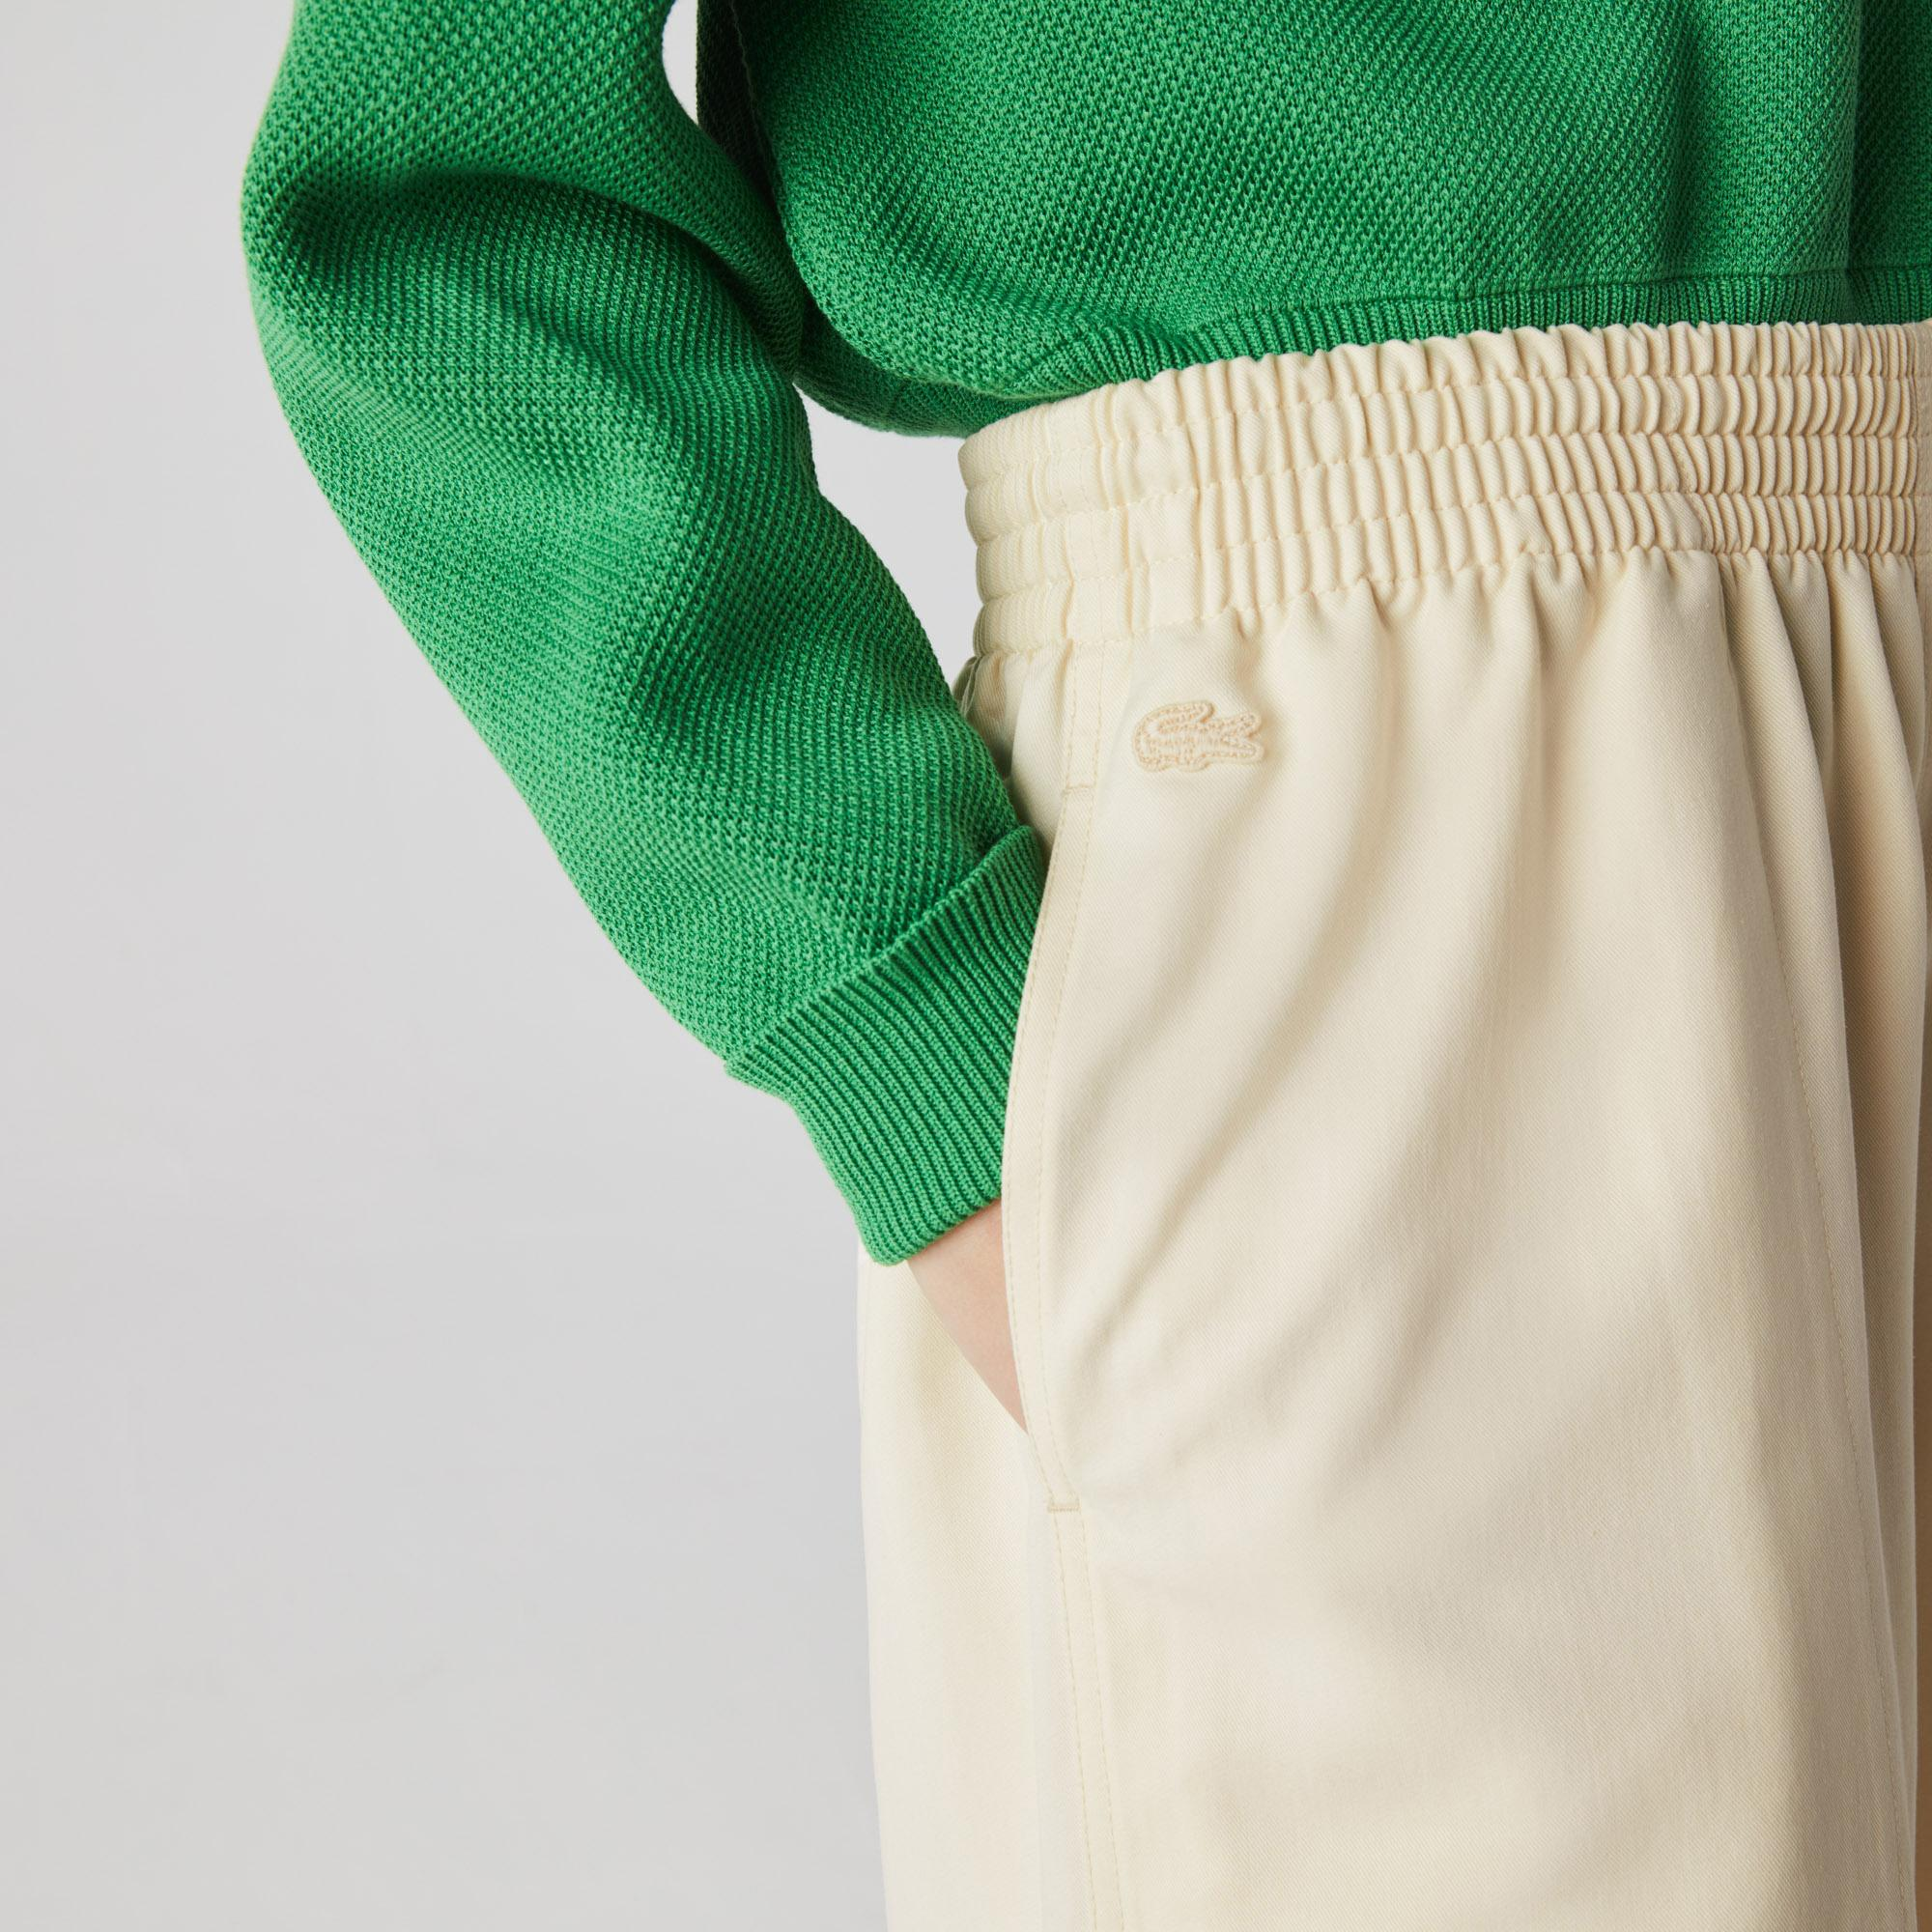 Lacoste Women's High-Waisted Flowing Culotte Skirt